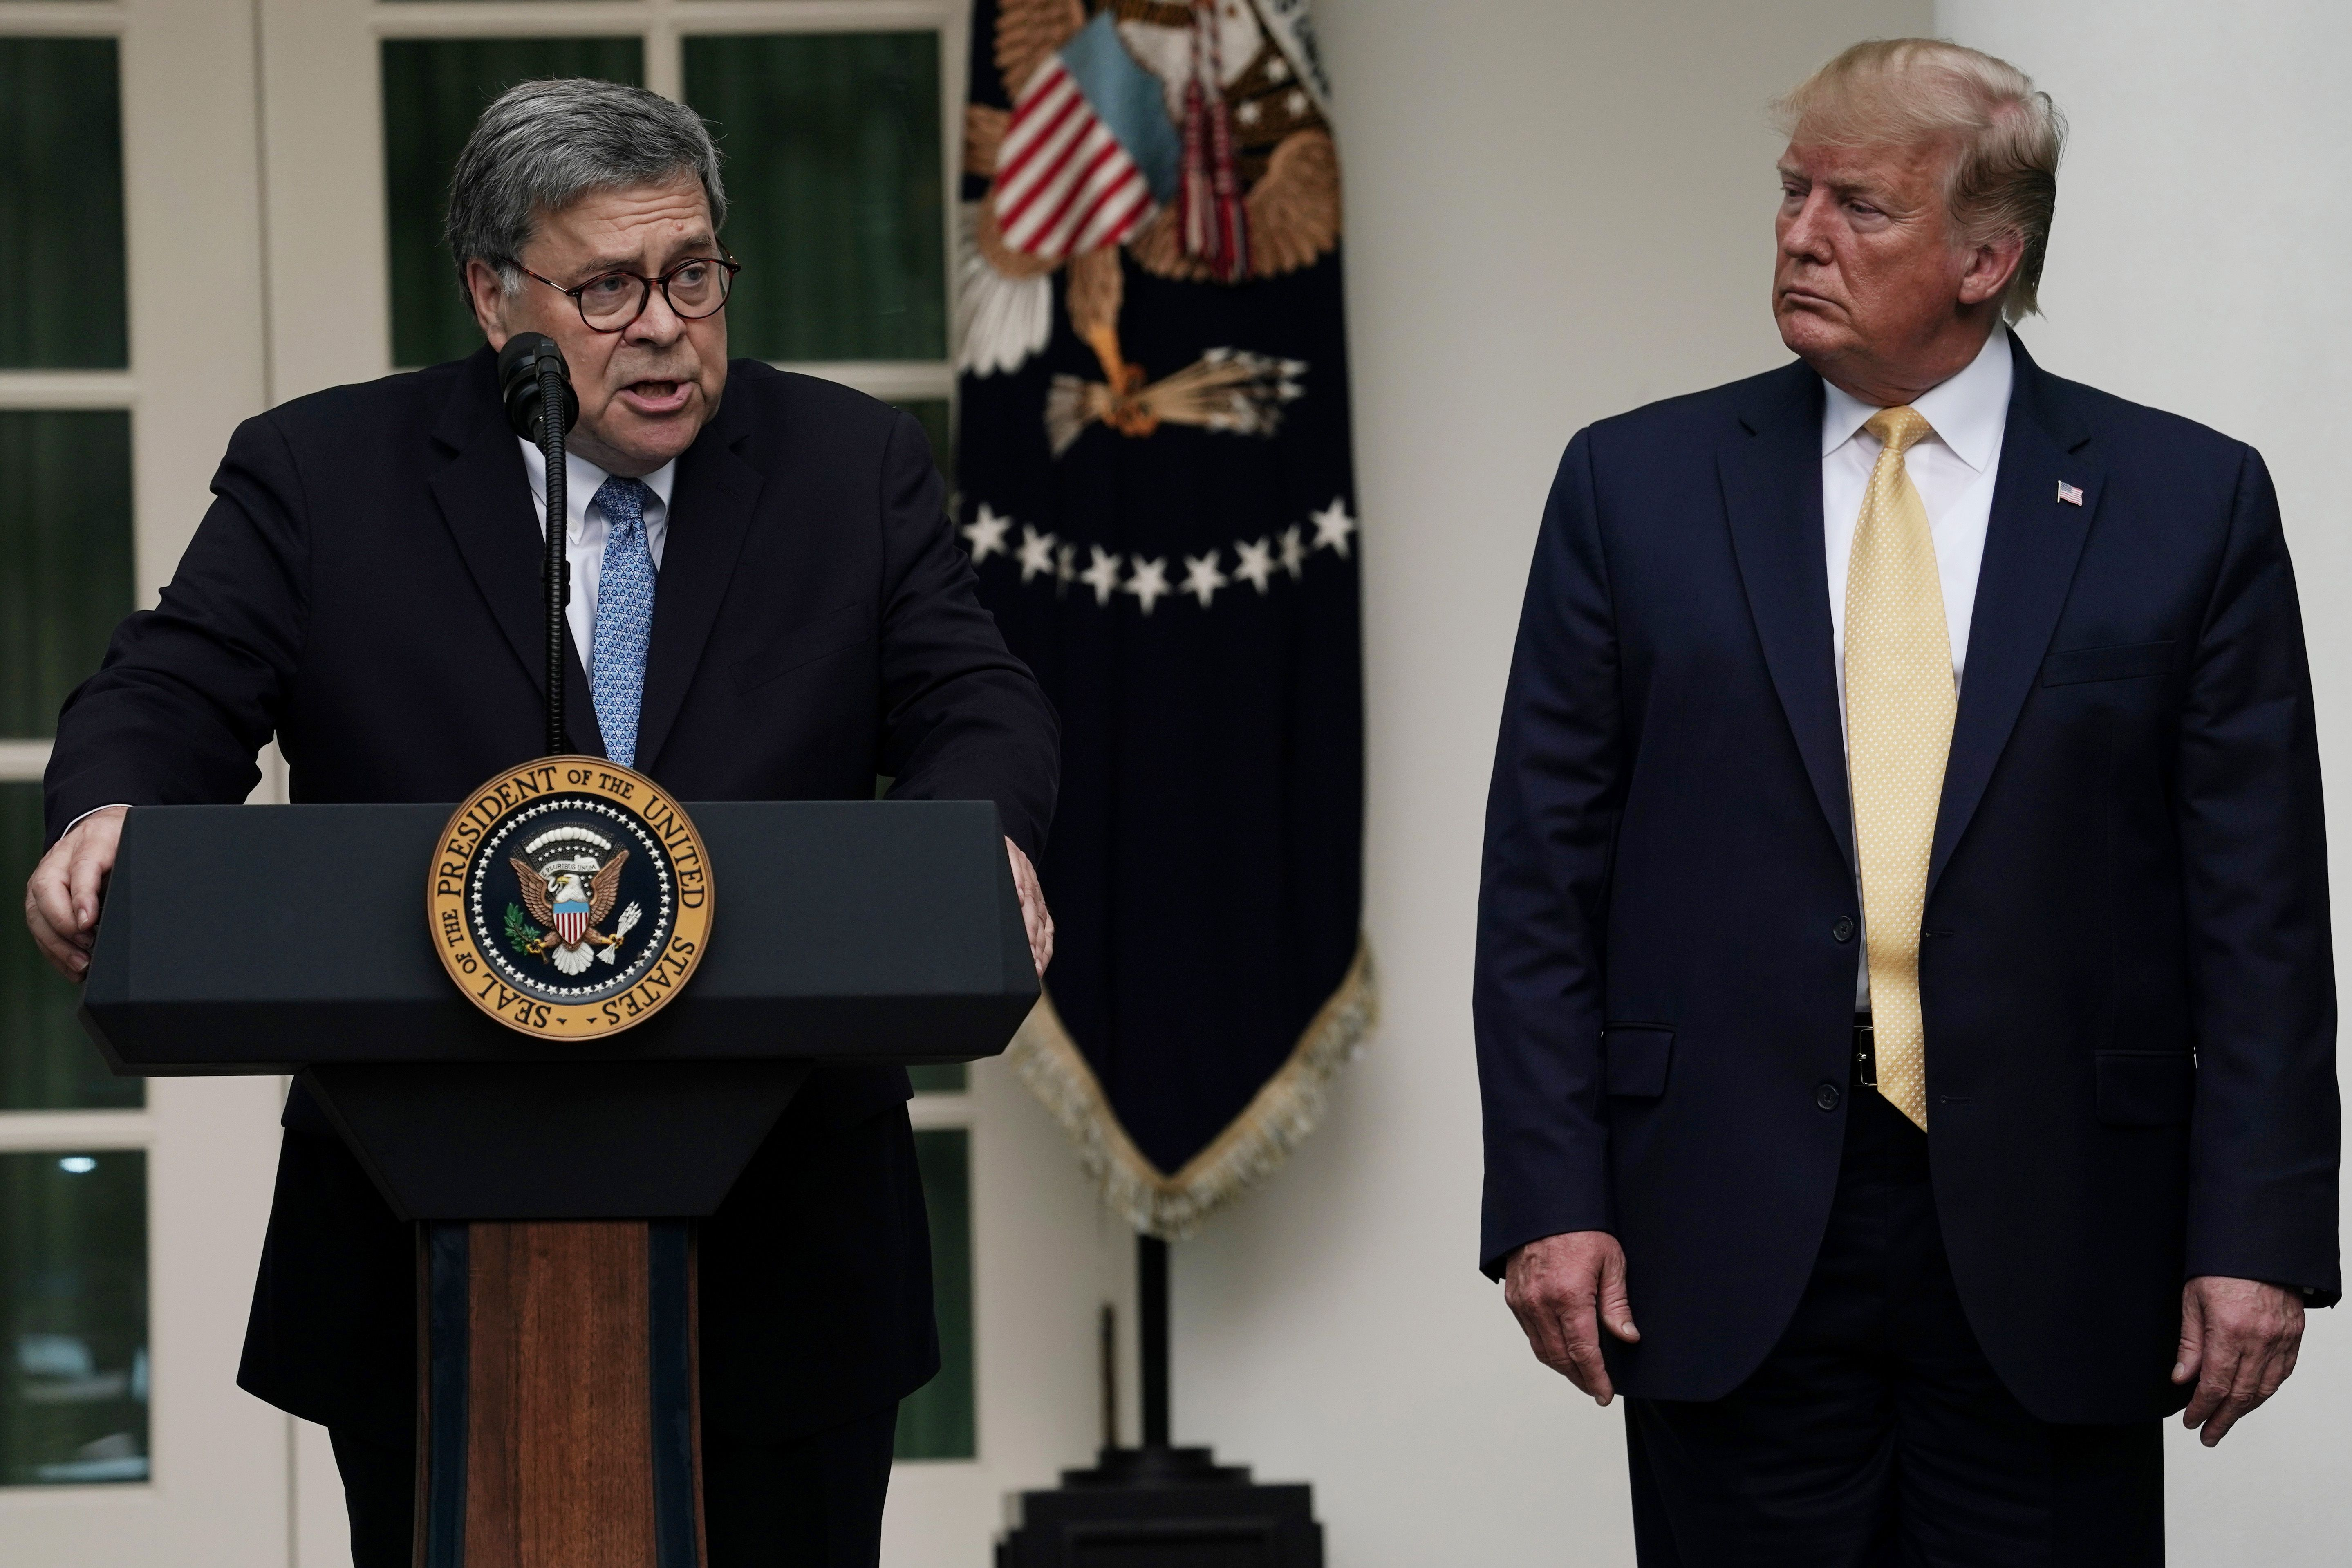 WashPost: Barr opposes key Russia probe finding by inspector general - Axios